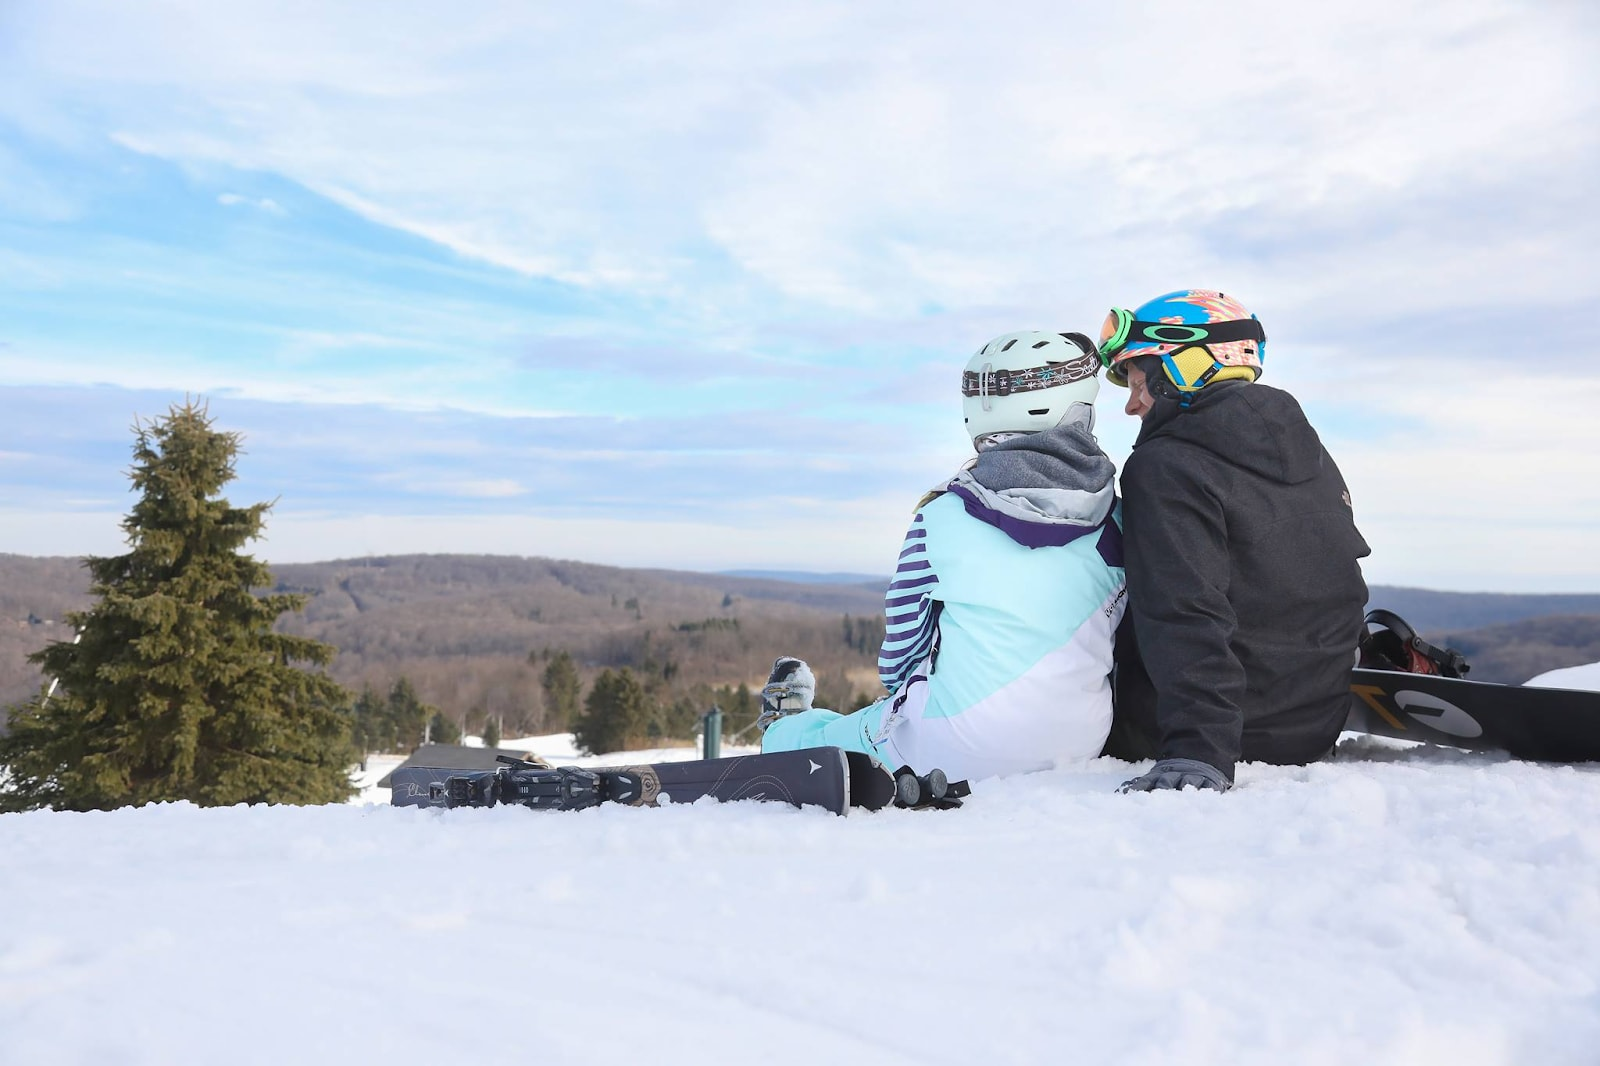 a couple enjoying the day at Seven Springs